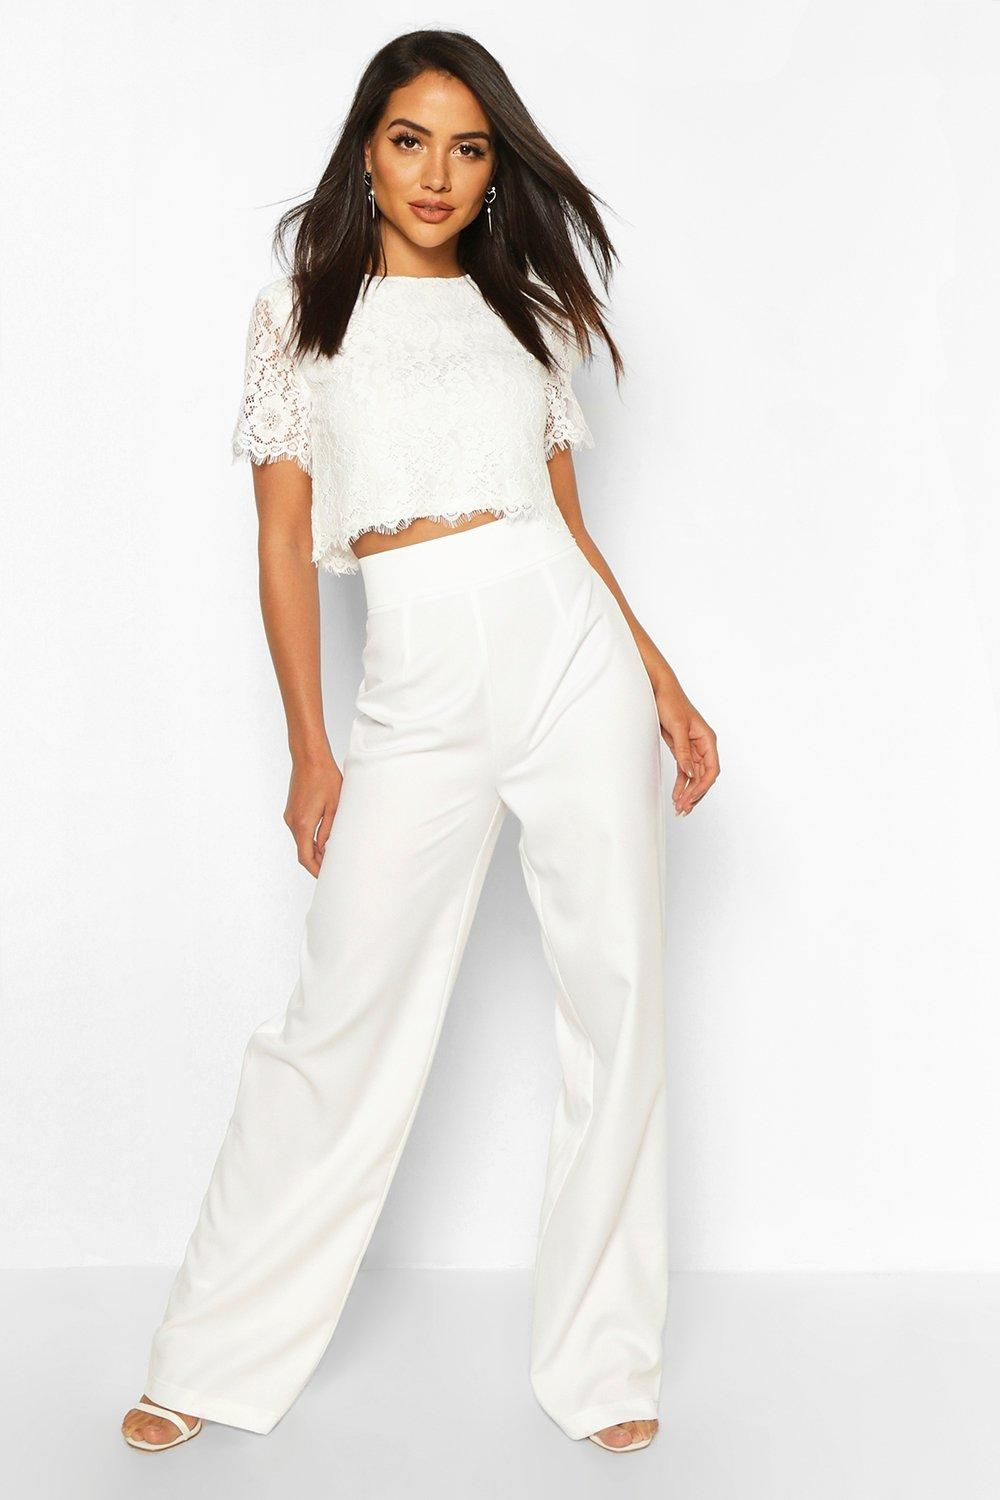 Woven Lace Top And Pants Two Piece Set Boohoo In 2021 Rehearsal Dinner Outfits Wedding Outfits For Women Bride Clothes [ 1500 x 1000 Pixel ]